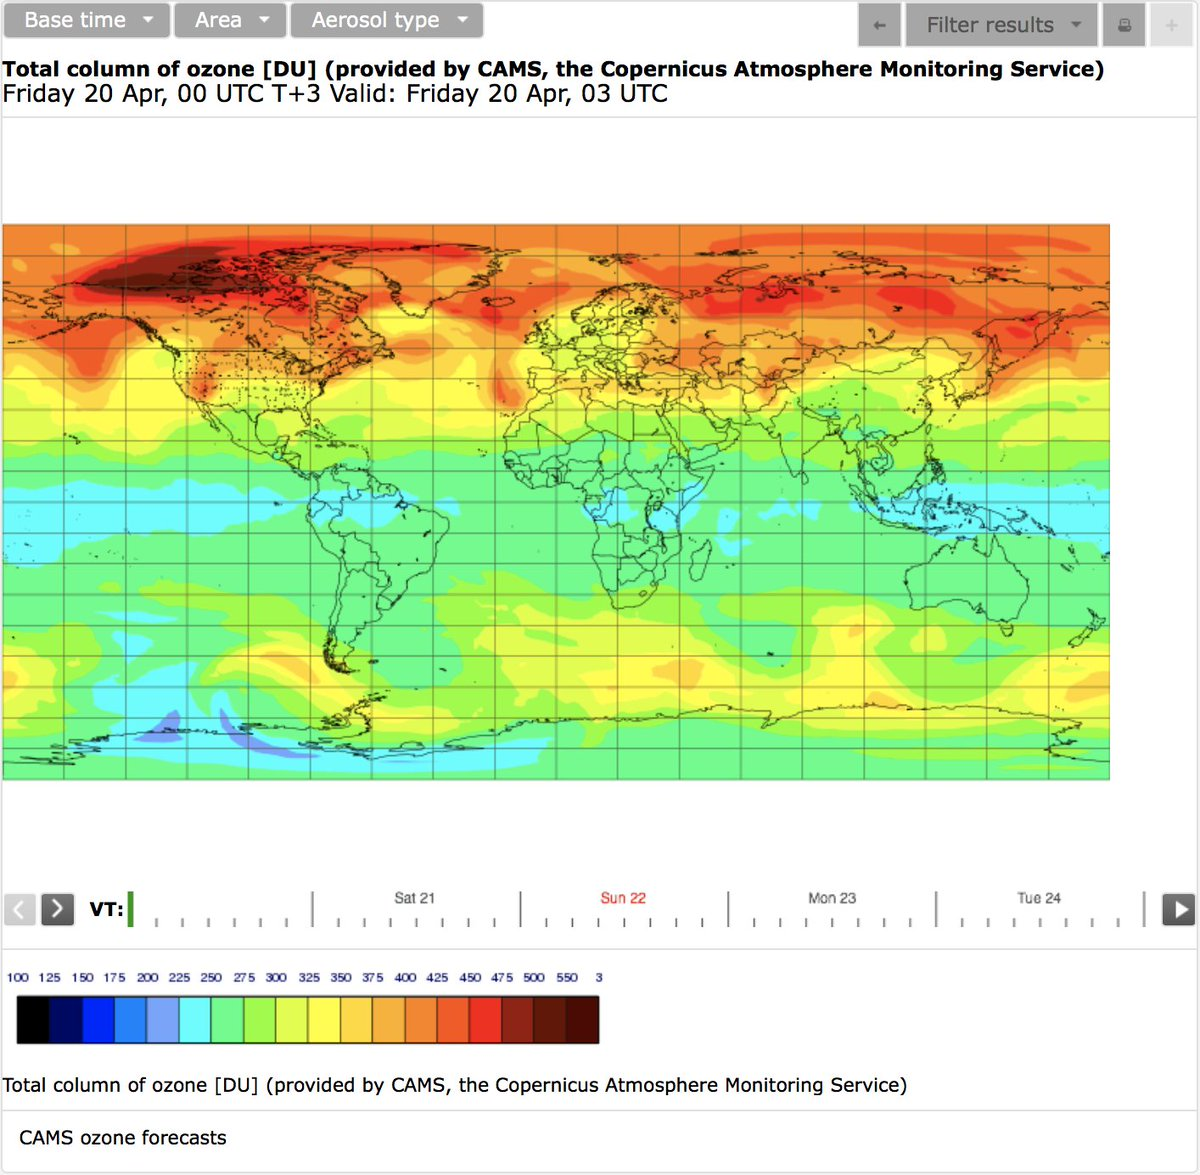 Latest view of global #wildfires  #ozone #AirQuality #GHG and #aerosol for #EarthDay2018 from #Copernicus Atmosphere Monitoring Service and #ECMWF. Latest charts for these products and more are updated daily at  http:// atmosphere.copernicus.eu/charts/cams/  &nbsp;  .<br>http://pic.twitter.com/GGjyw1jlcH